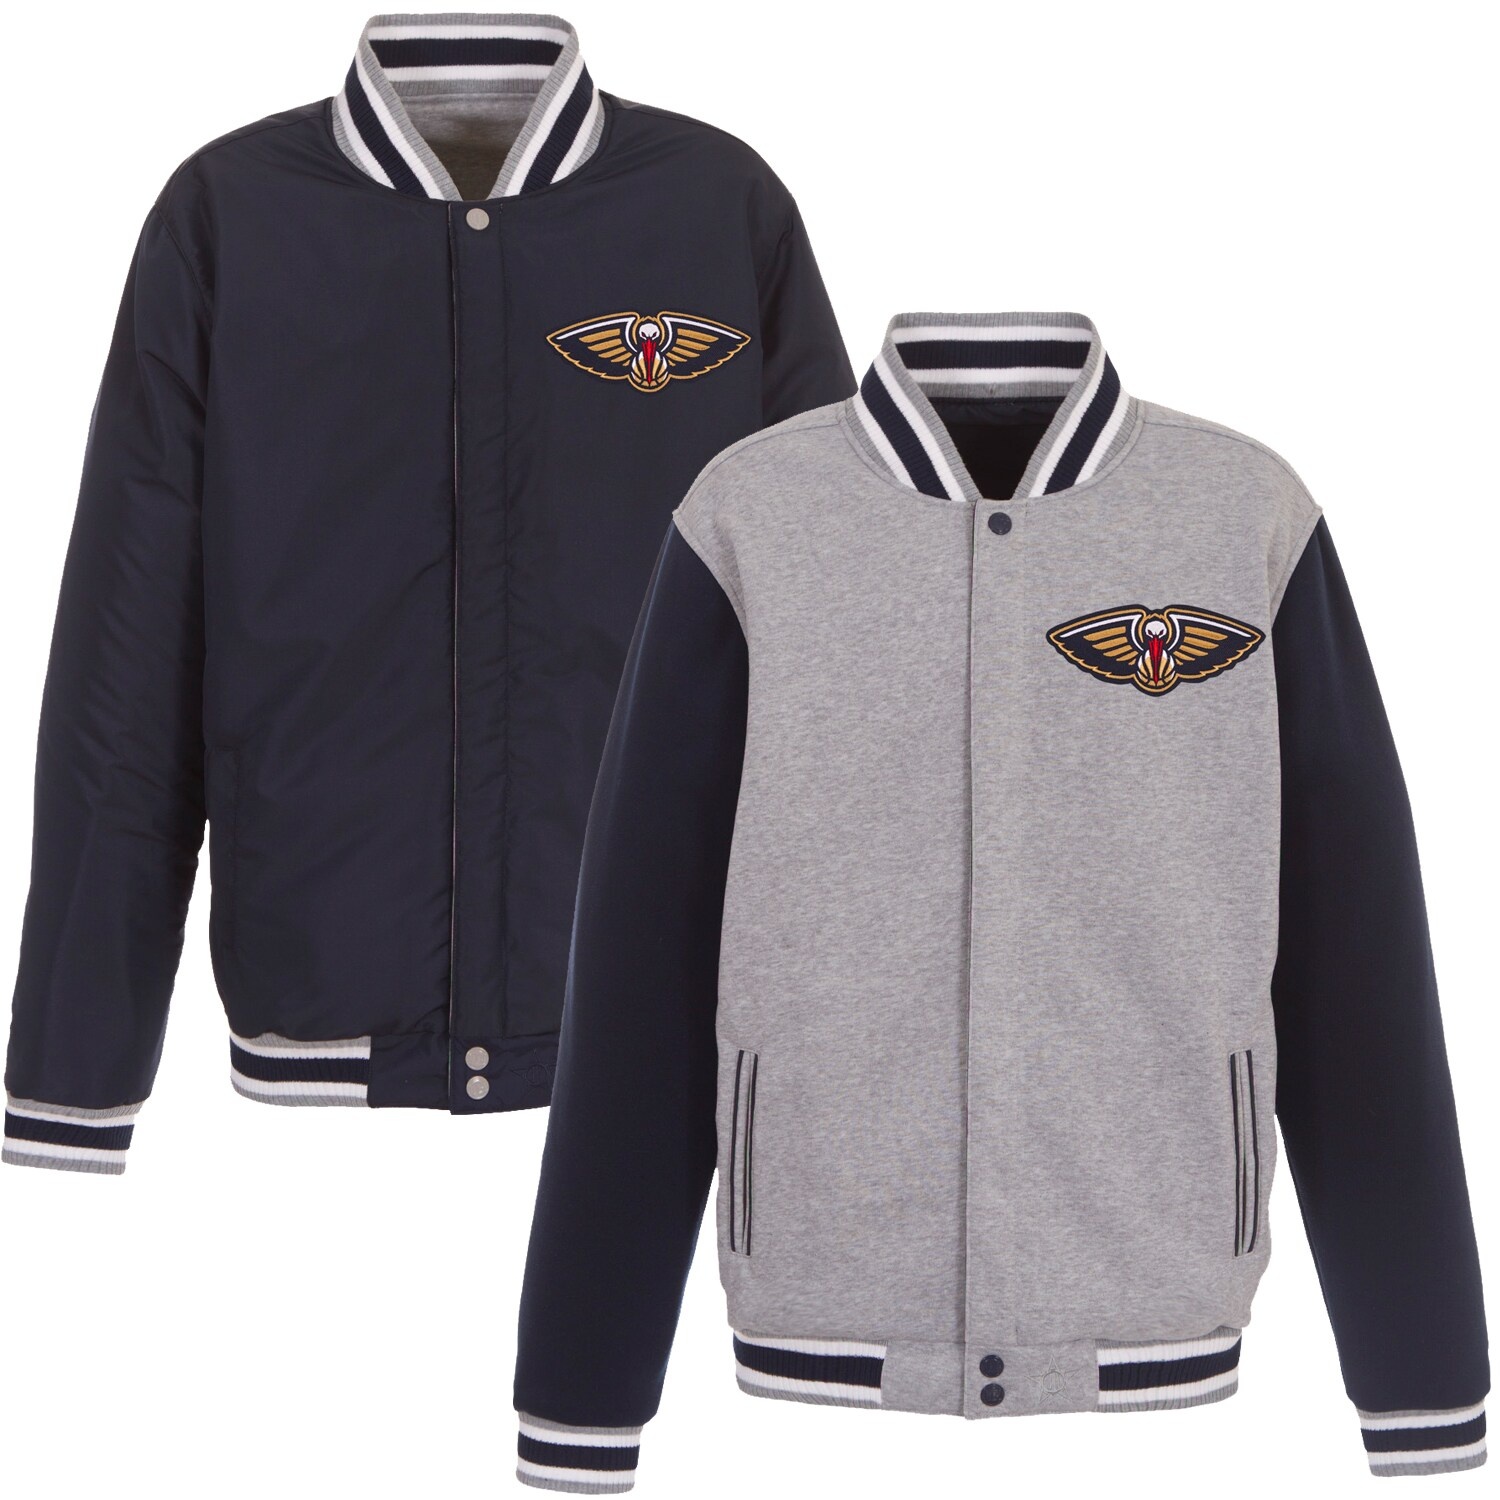 New Orleans Pelicans JH Design Embroidered Logo Reversible Fleece Full-Snap Jacket - Gray/Navy